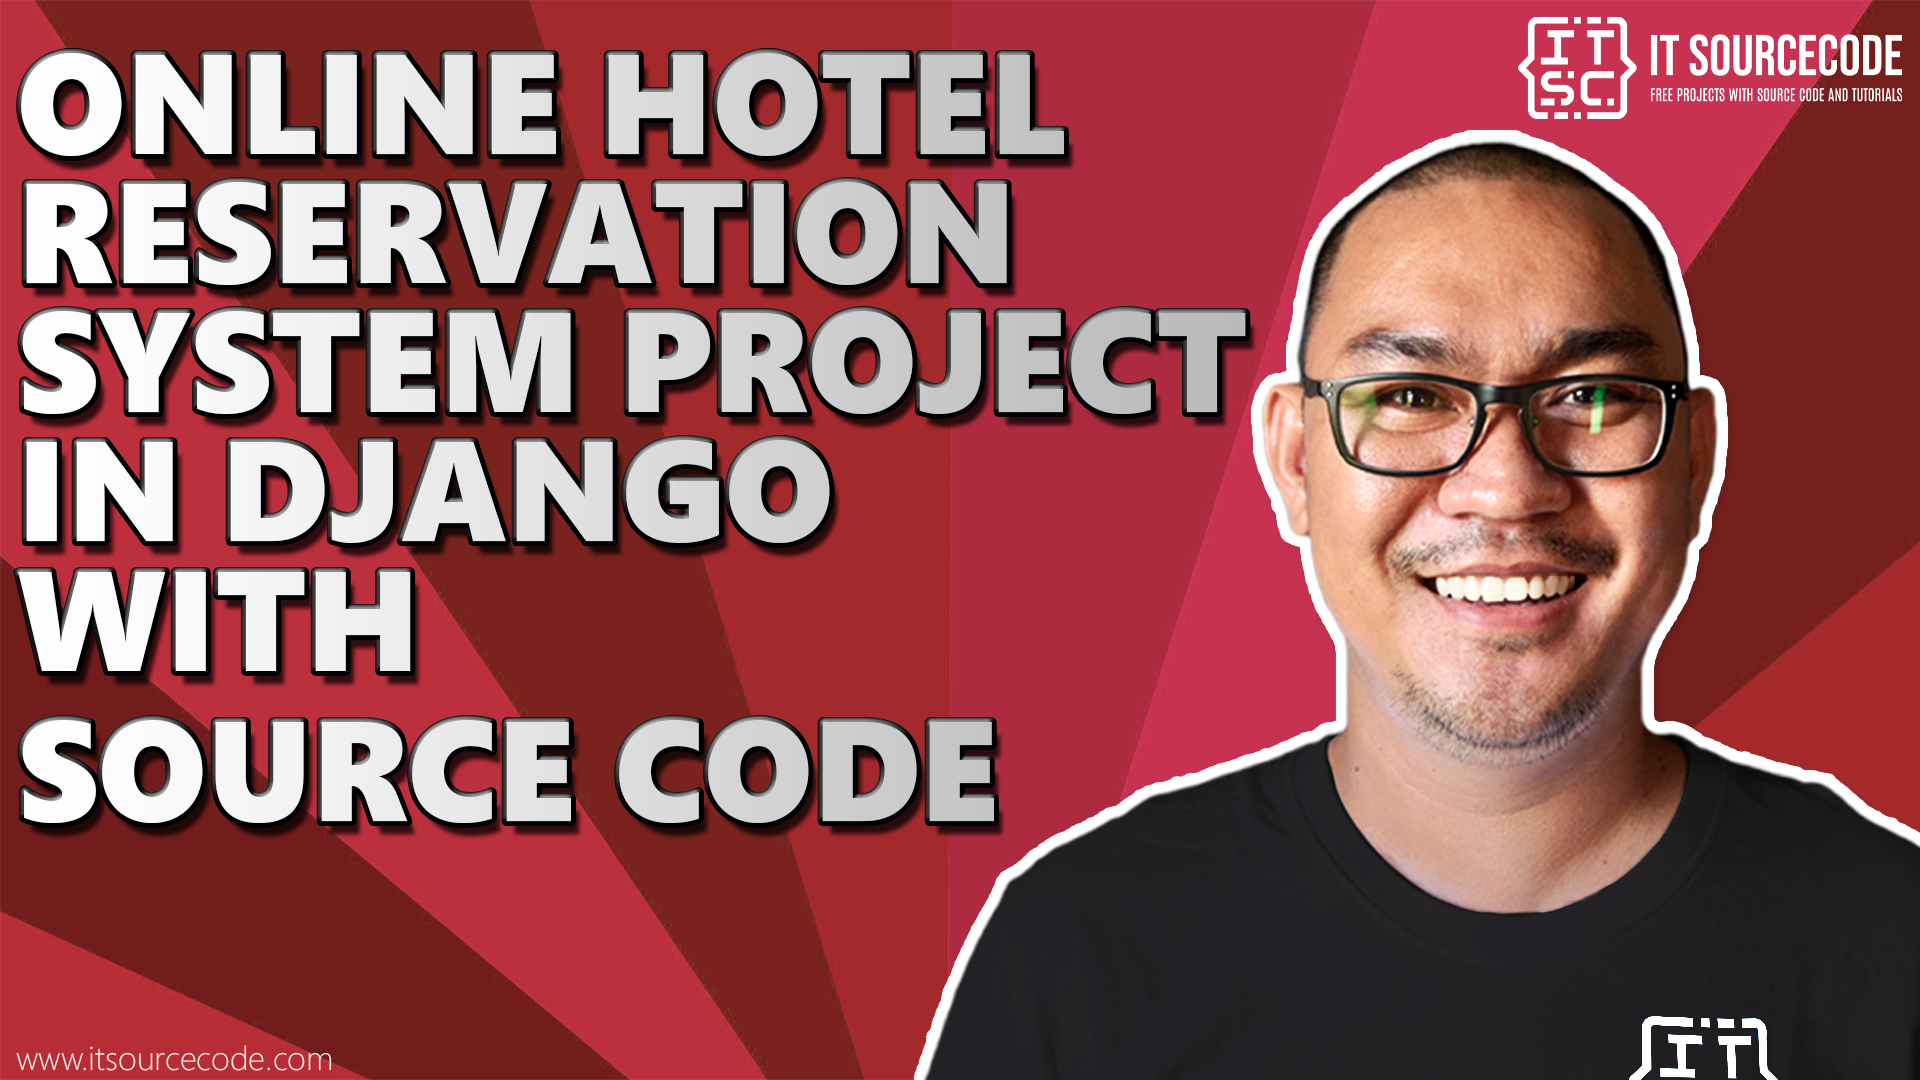 Online Hotel reservation system project in django with source code